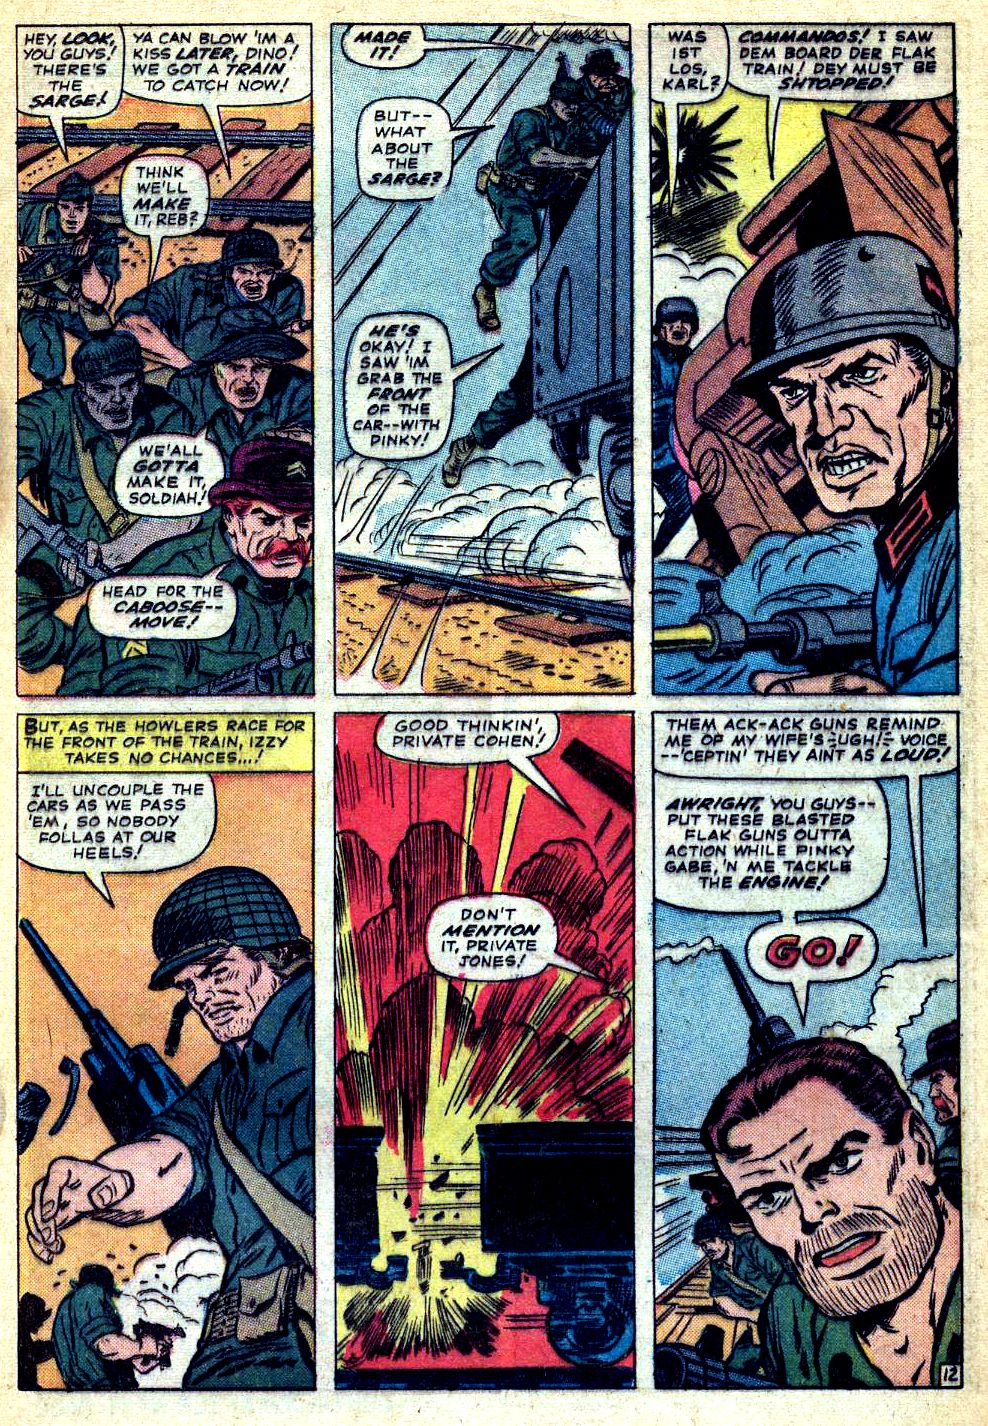 Read online Sgt. Fury comic -  Issue #22 - 17